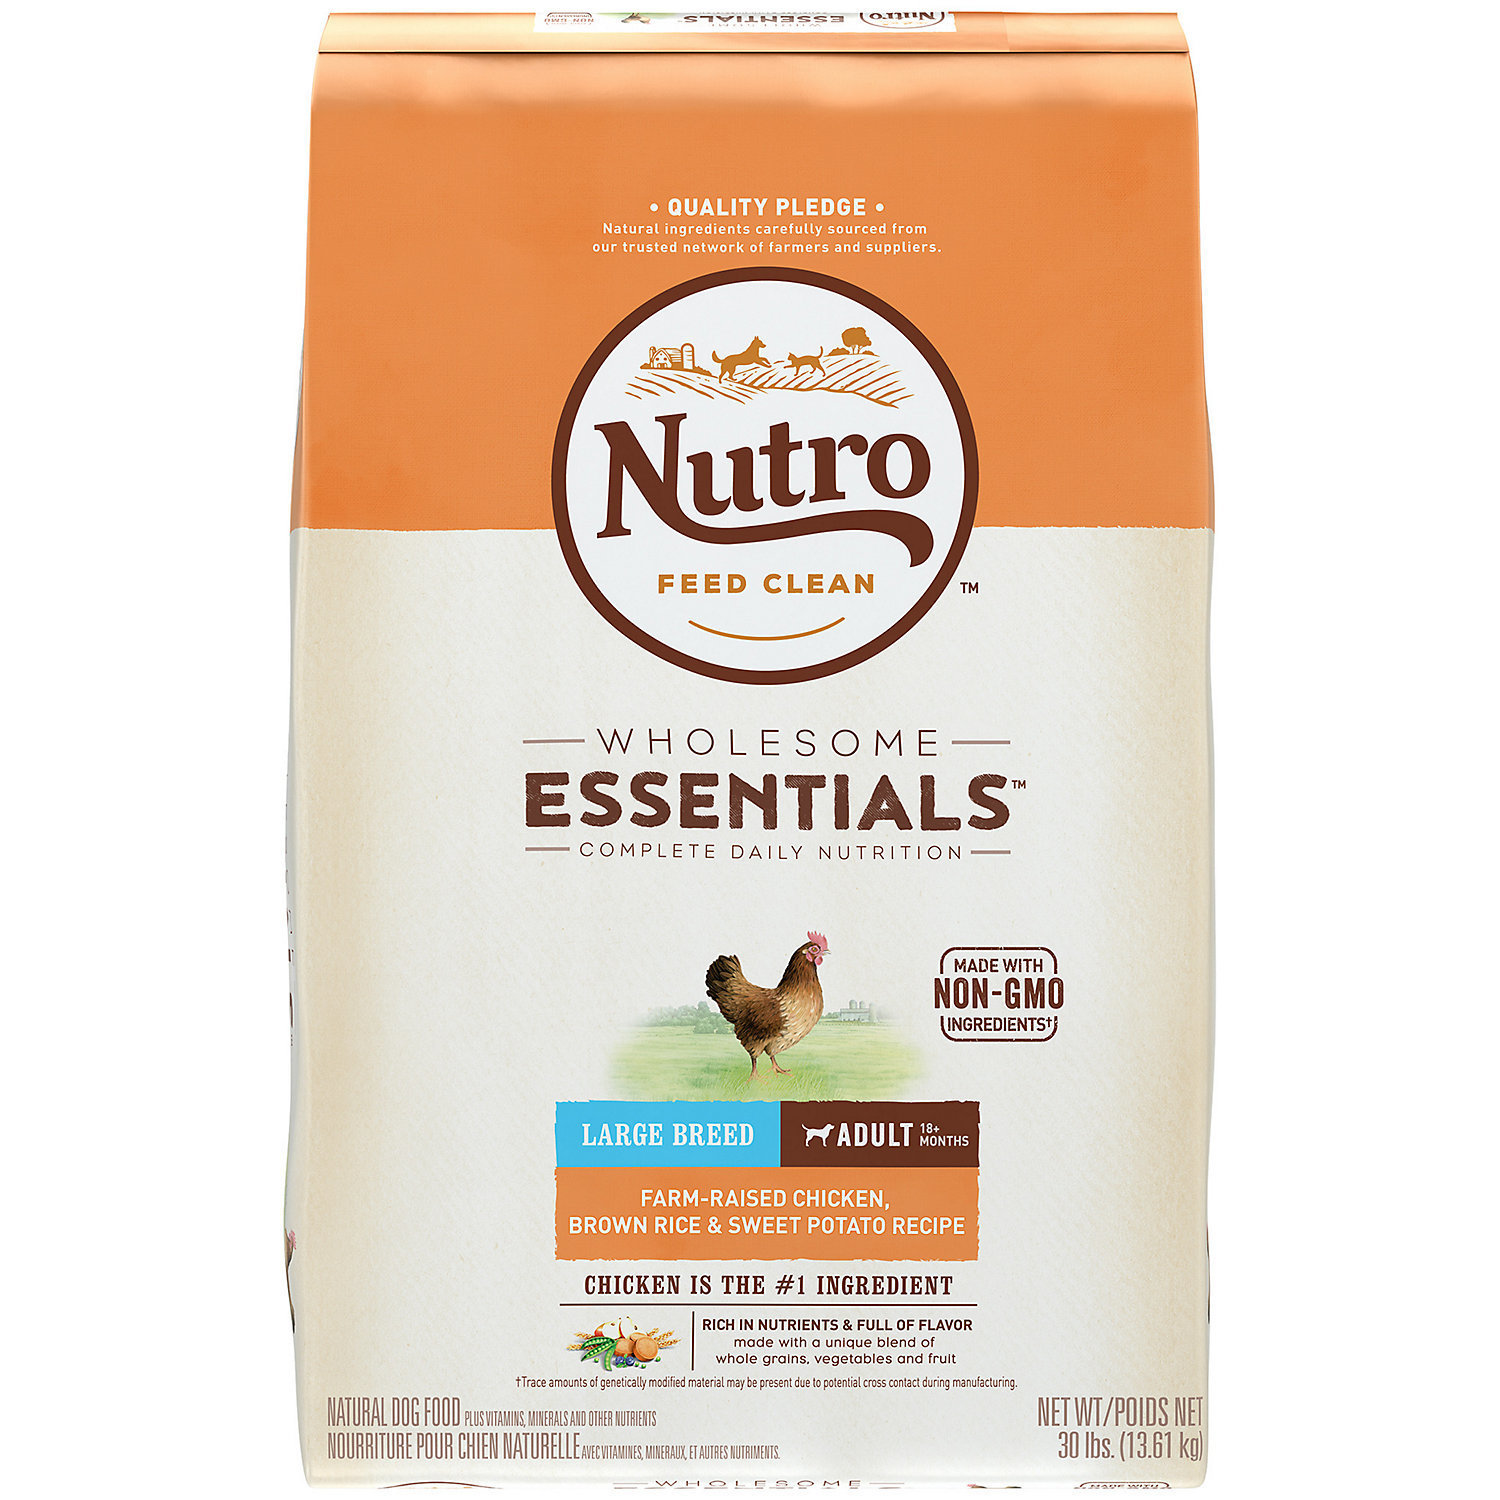 Nutro Wholesome Essentials Large Breed Adult Chicken & Rice Dry Dog Food - 30lb (12/18) (A.Q3)